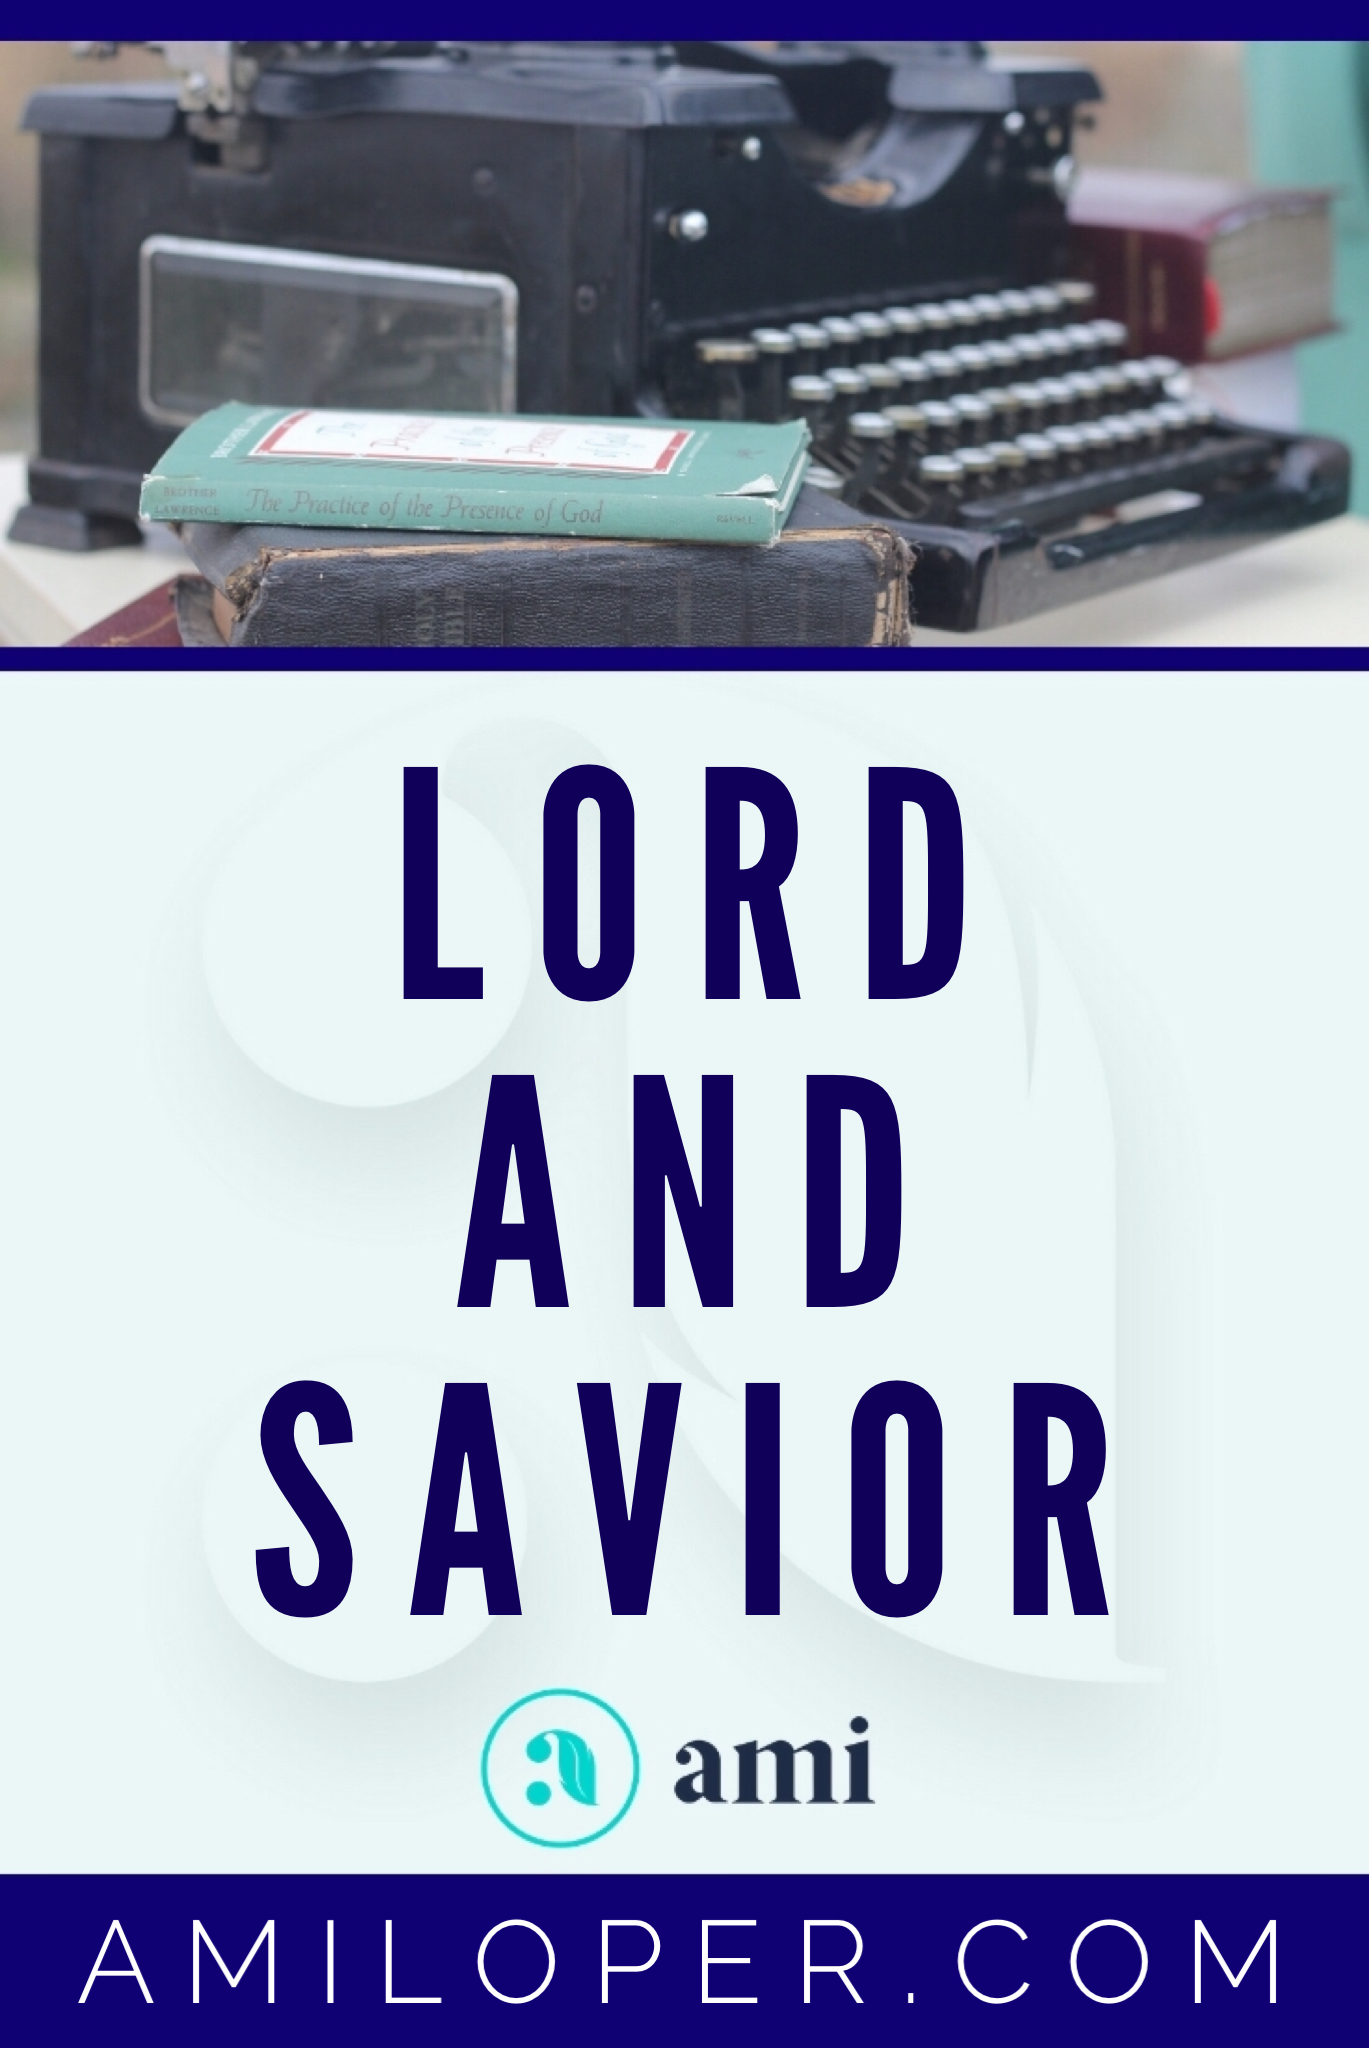 """We talk about Jesus being our """"Lord and Savior,"""" but is He actually both to us?   #JesusSaves #ChristianBlog"""